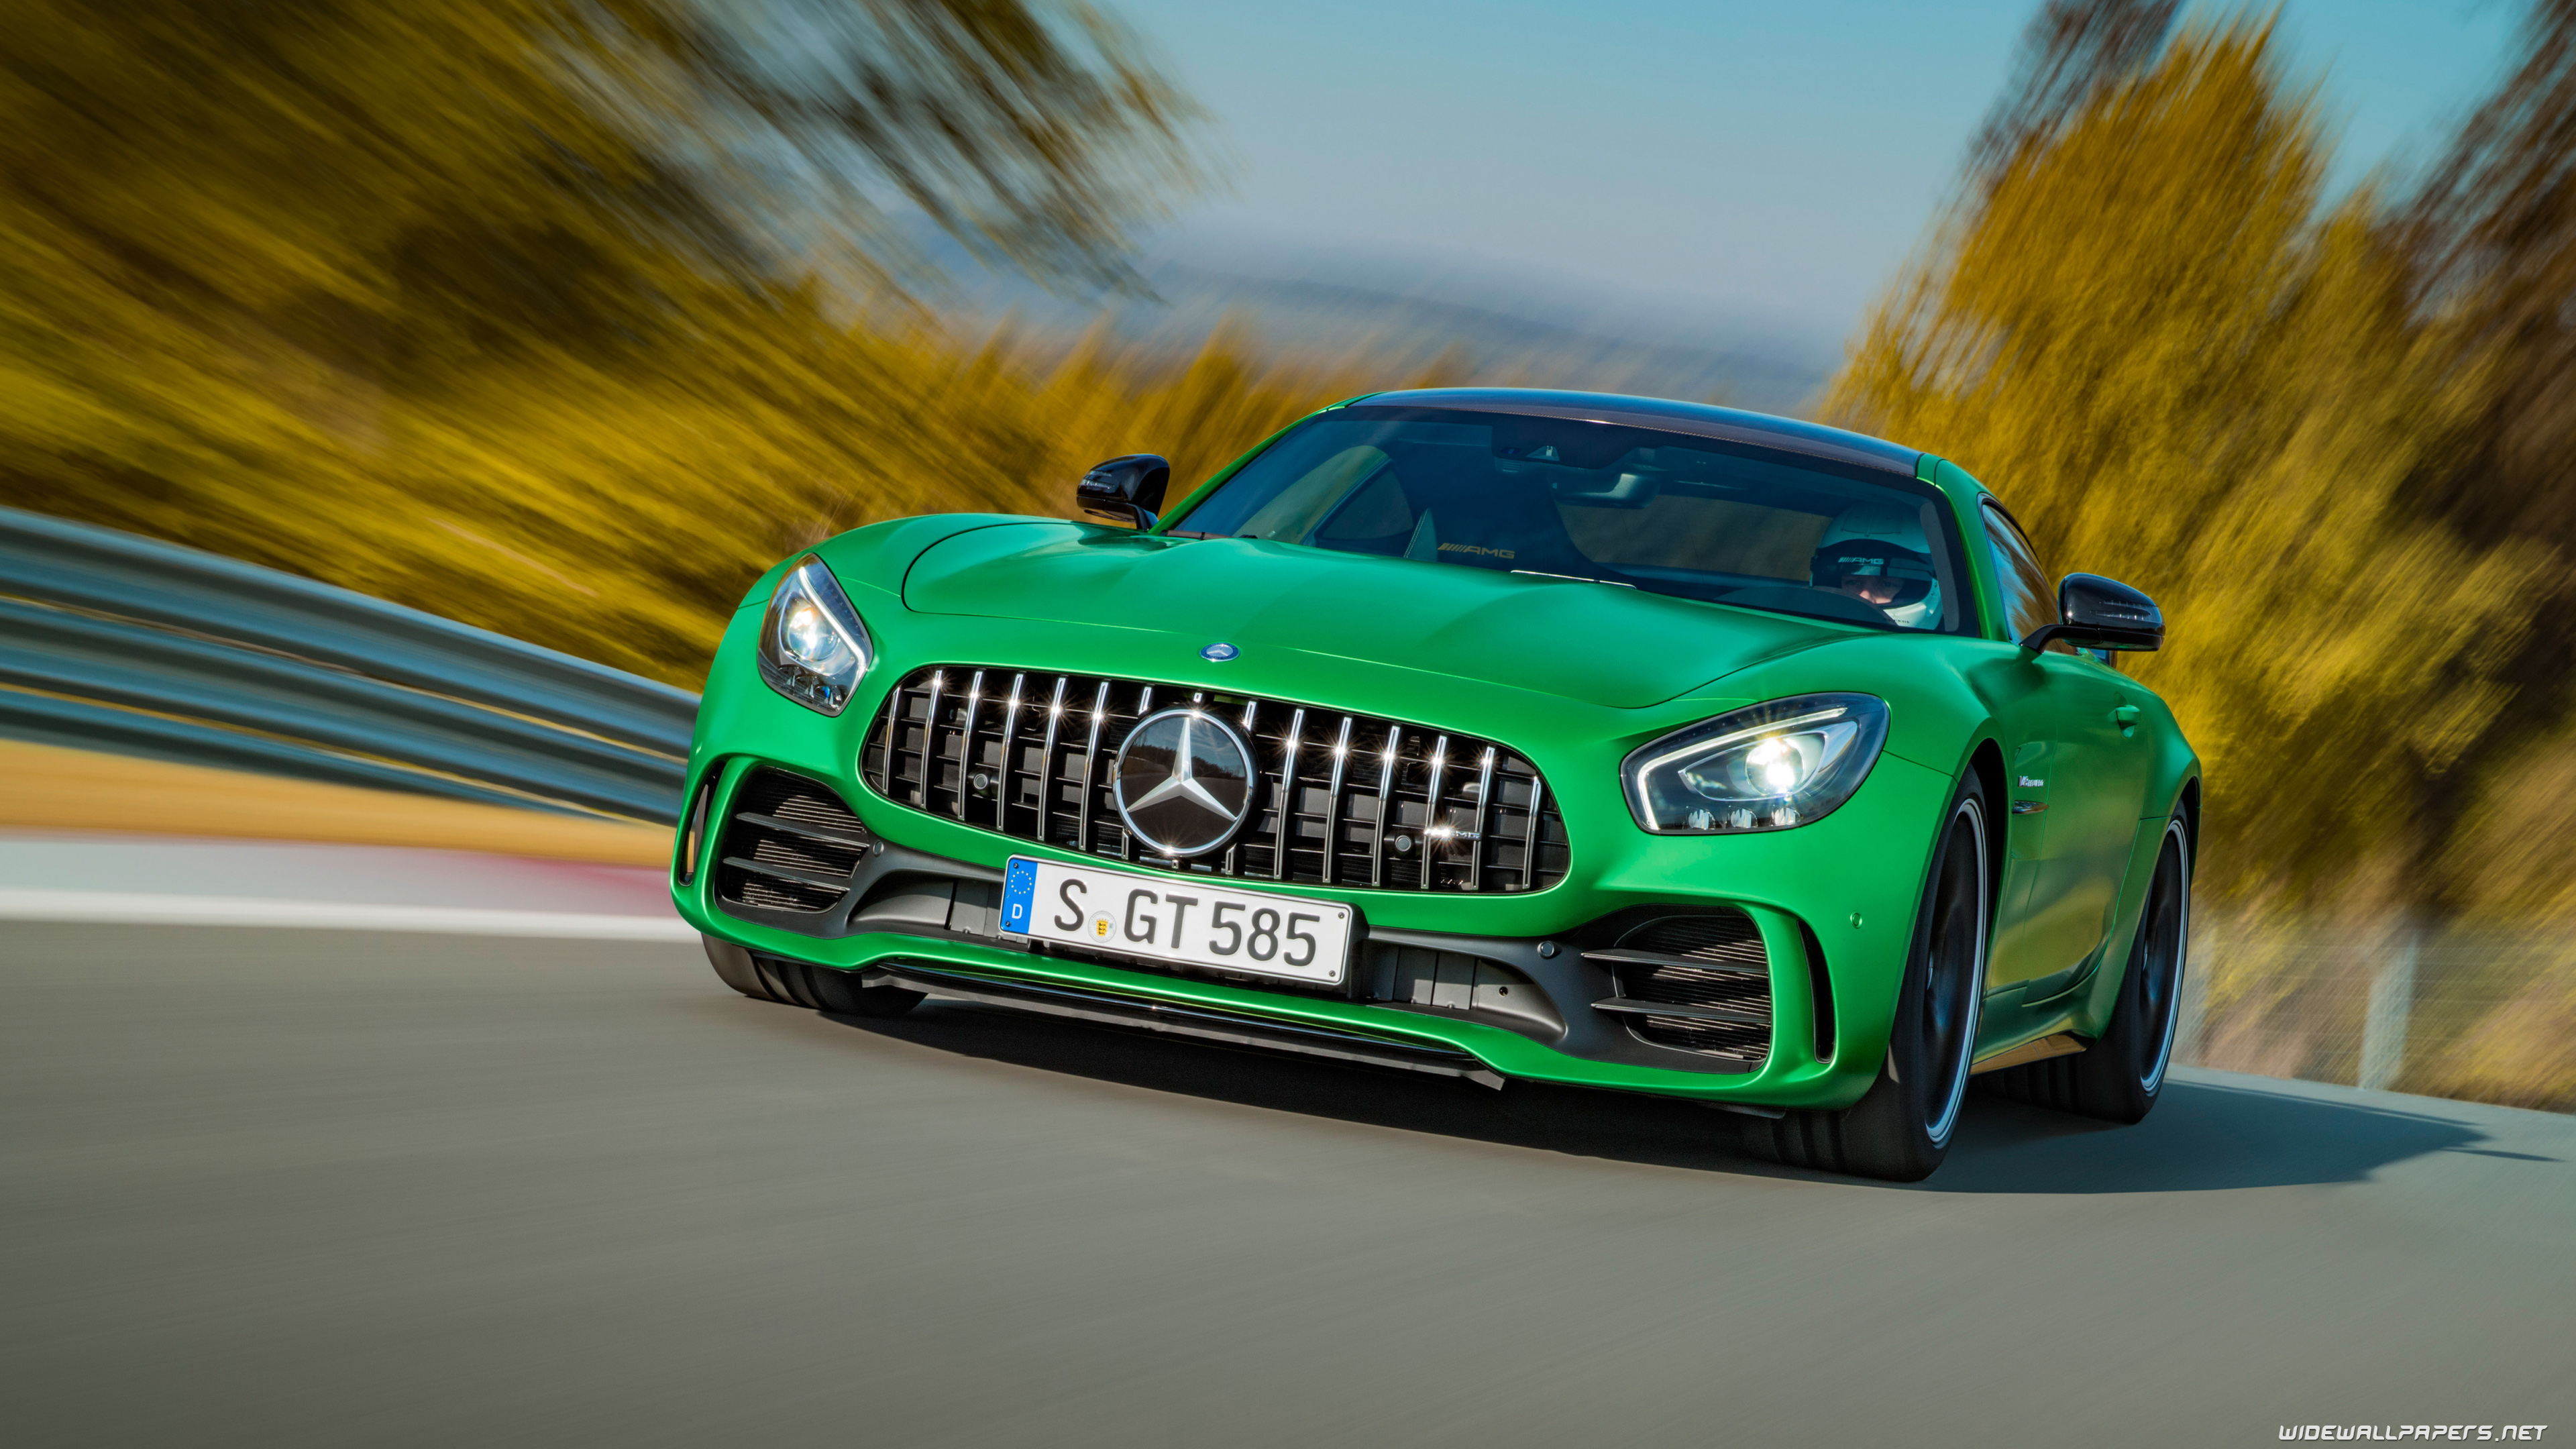 Free Download Car Wallpapers For Mobile Mercedes Amg Gt Cars Desktop Wallpapers 4k Ultra Hd